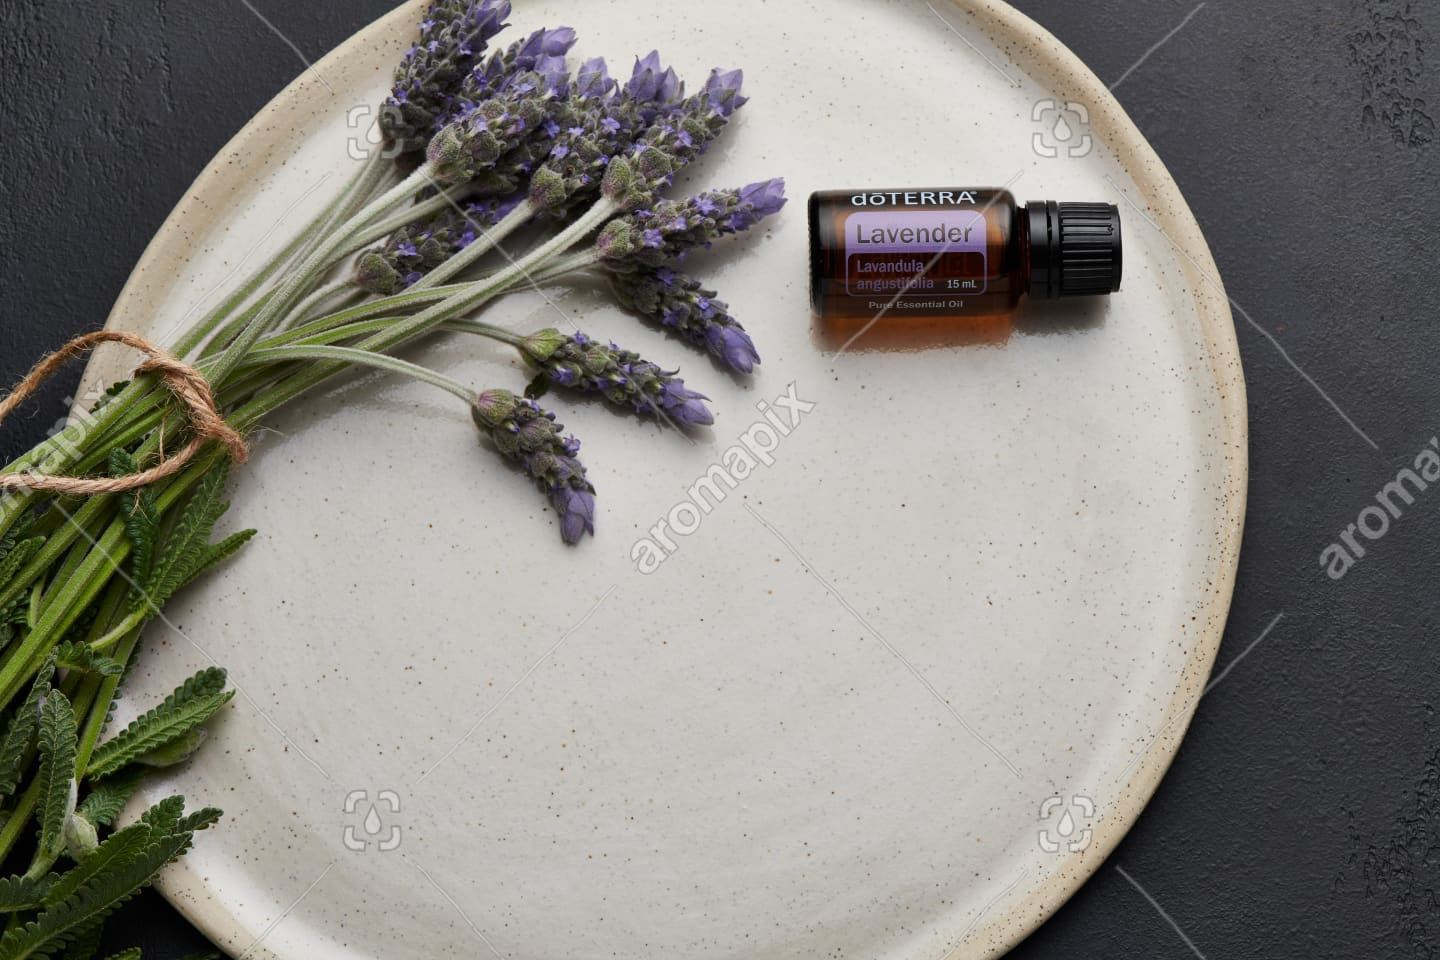 doTERRA Lavender and lavender flowers on white ceramic plate with black background